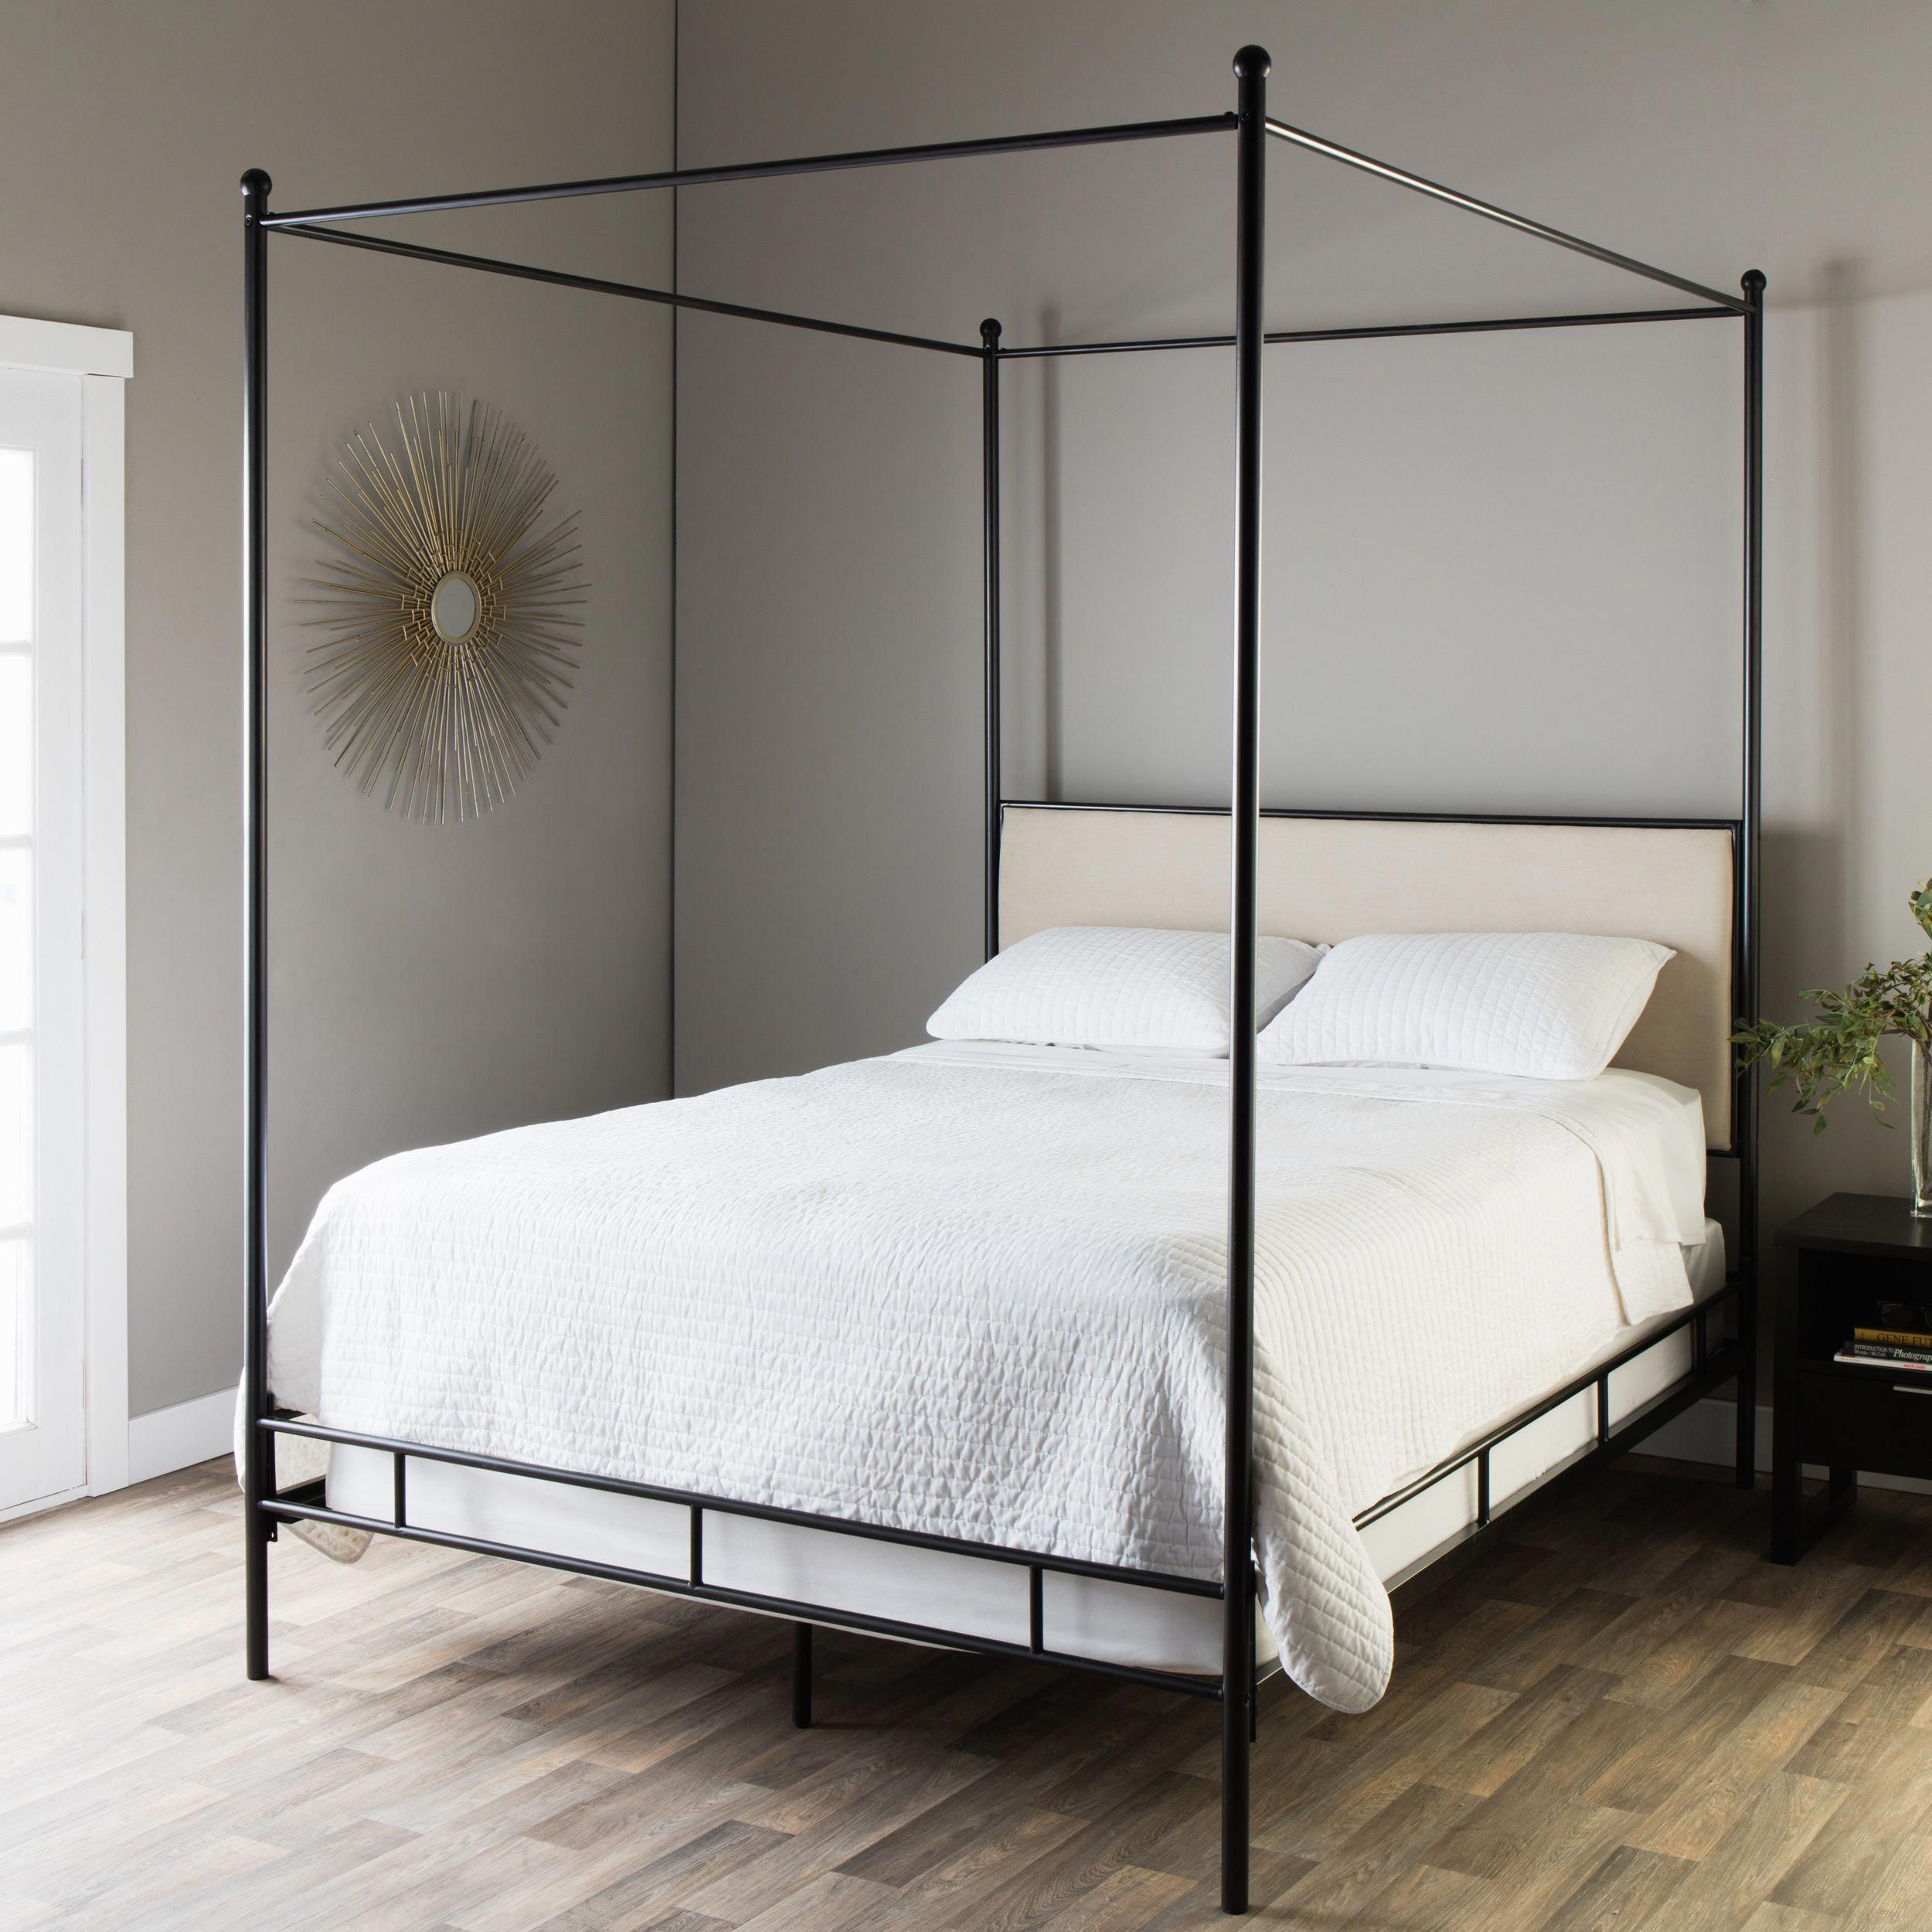 AffordableFurniture610 Modern canopy bed, Queen size